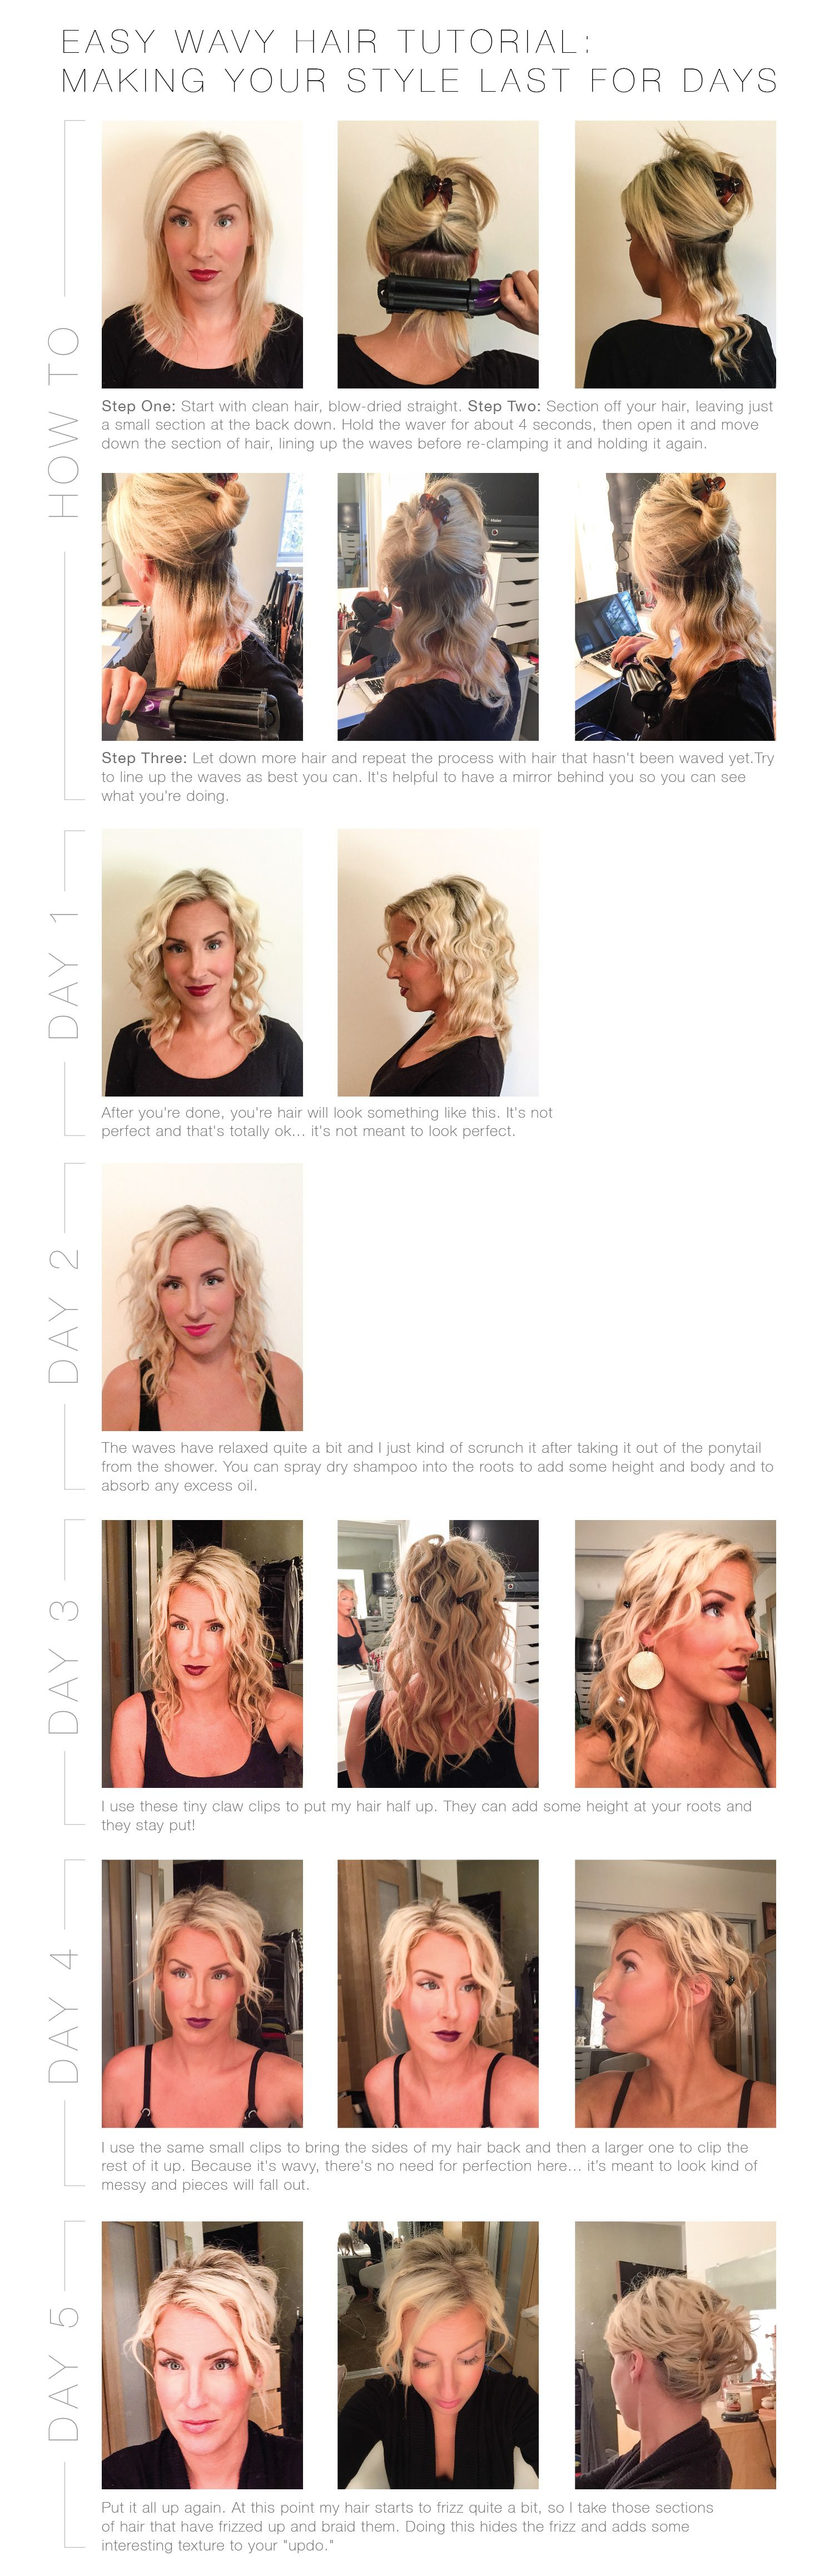 Easy Beachy Waves Hair Tutorial And How To Make It Last For DAYS - Edit your hairstyle